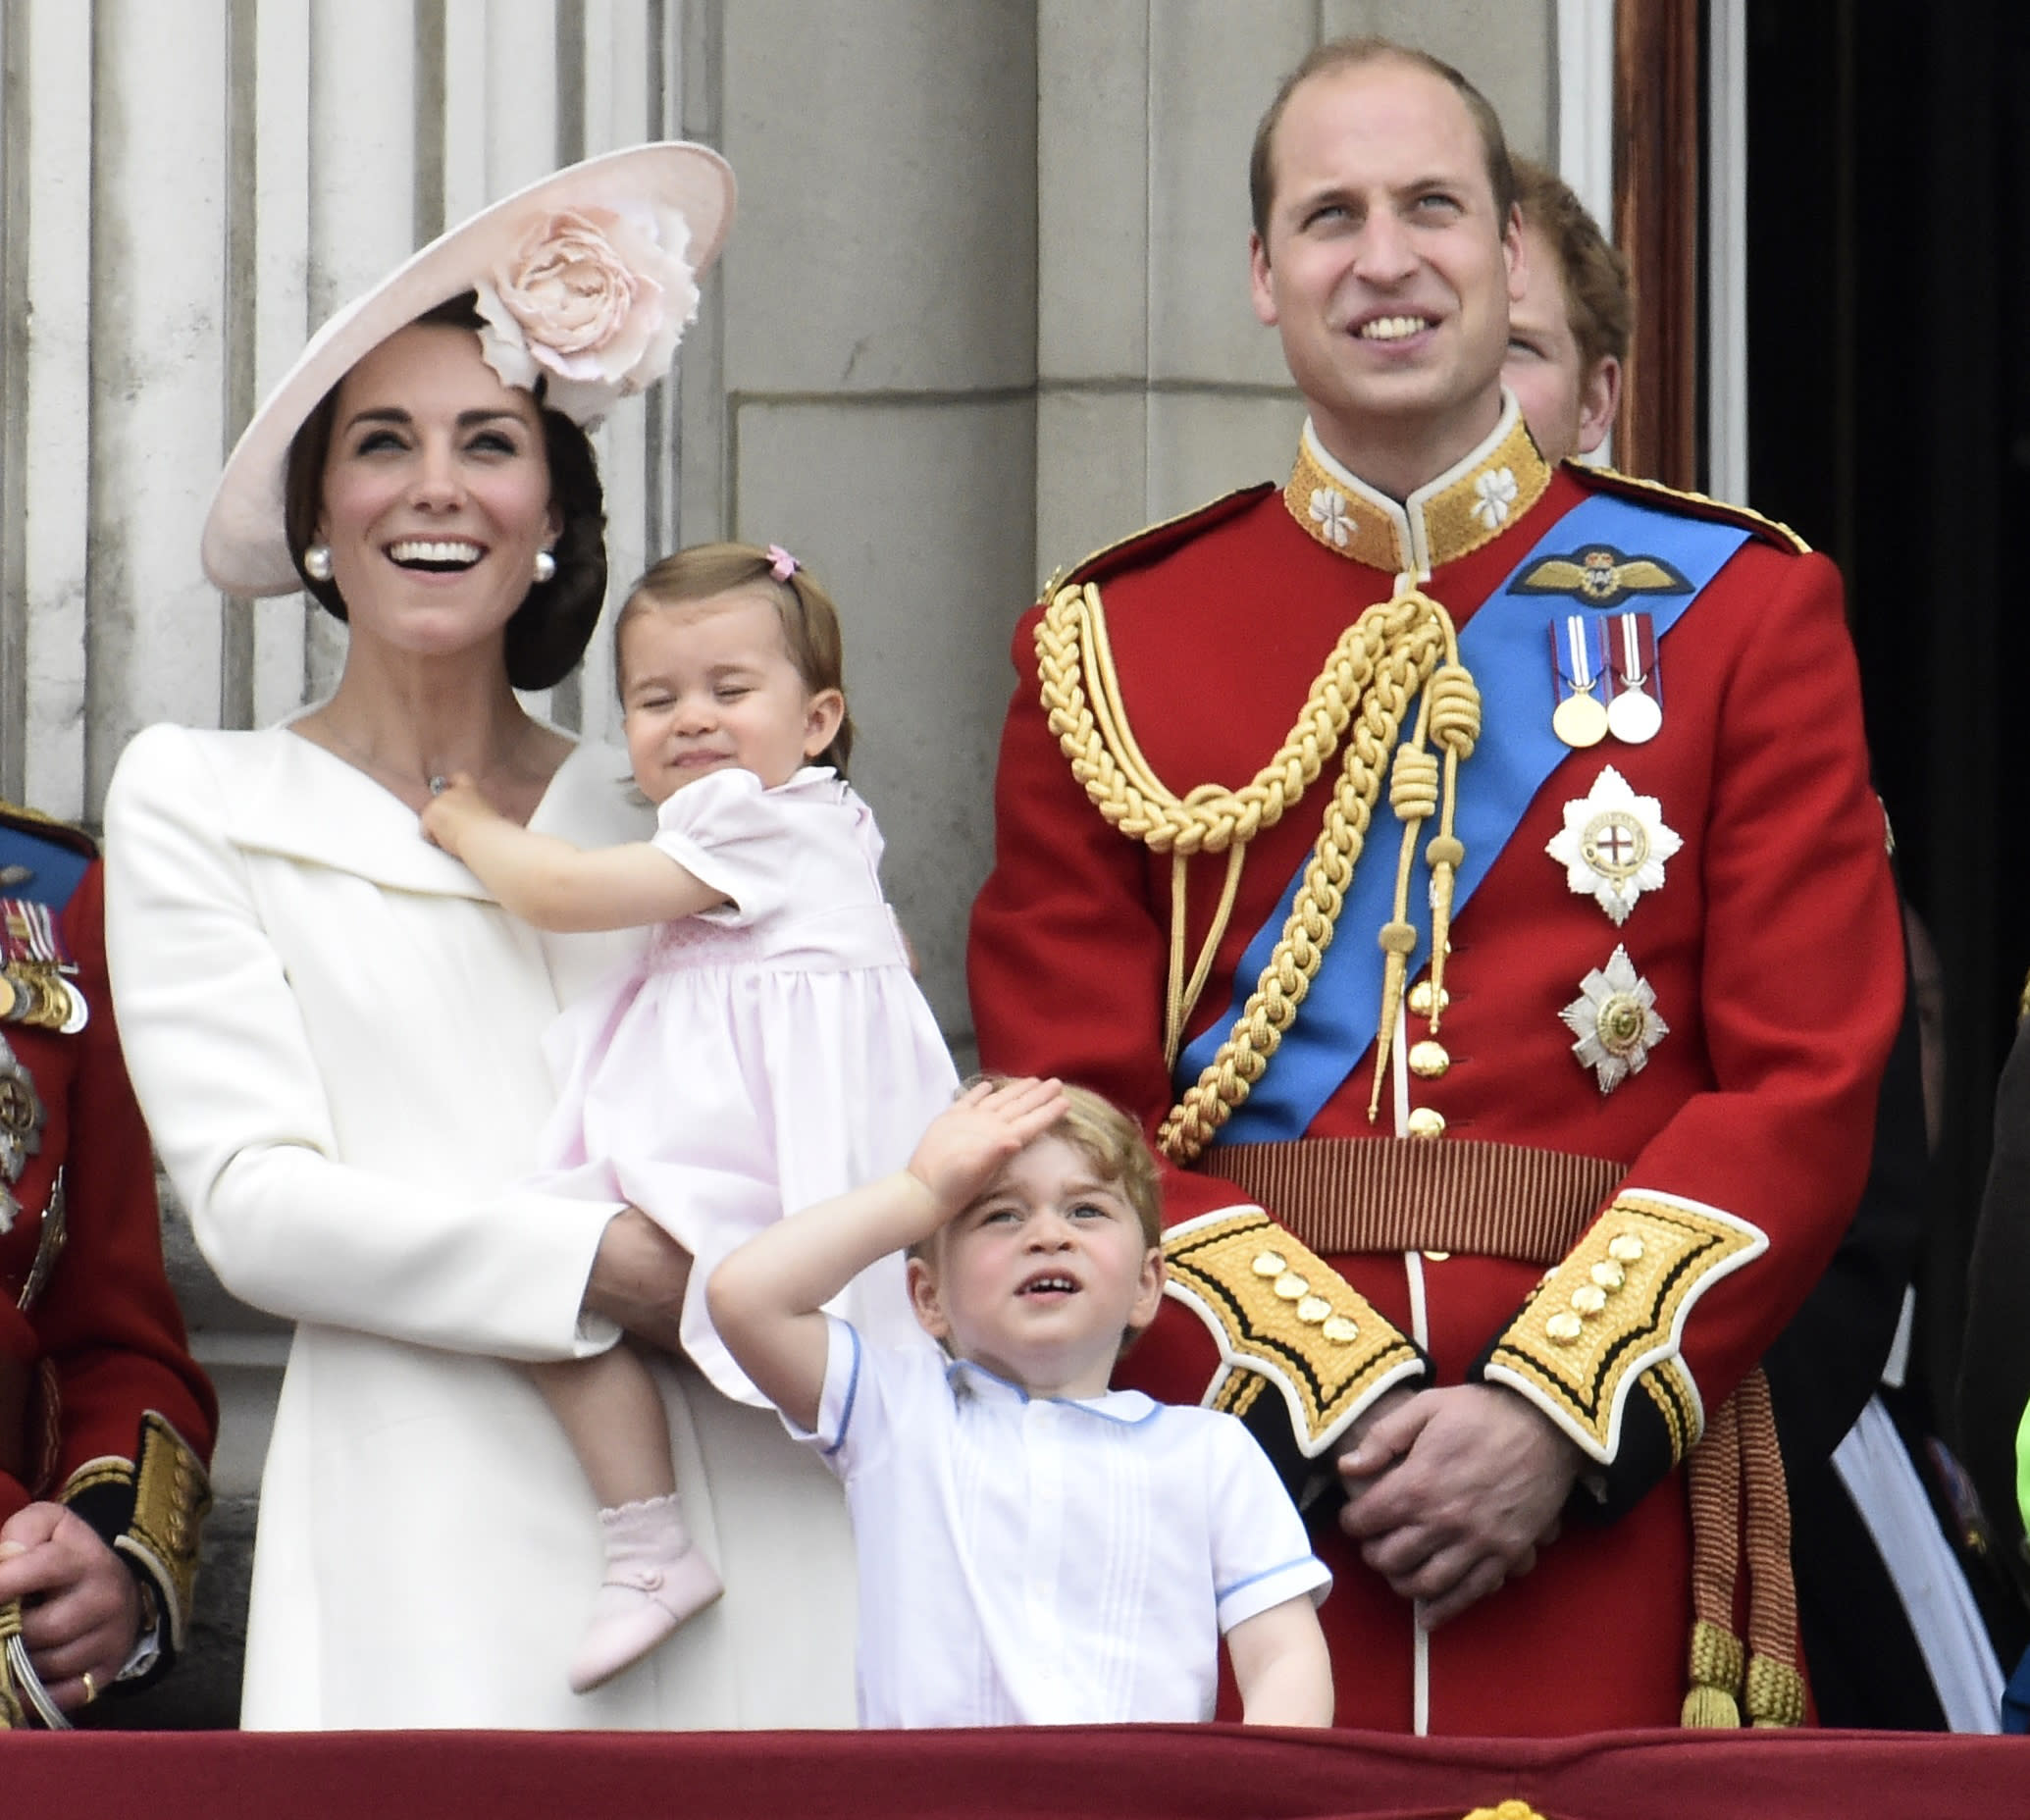 Catherine, Duchess of Cambridge holding Princess Charlotte, Prince George and Prince William, watch a flypast as they stand on the balcony of Buckingham Palace after the annual Trooping the Colour ceremony on Horseguards Parade in central London, Britain June 11, 2016. Trooping the Colour is a ceremony to honour Queen Elizabeth's official birthday. The Queen celebrates her 90th birthday this year.   REUTERS/Toby Melville